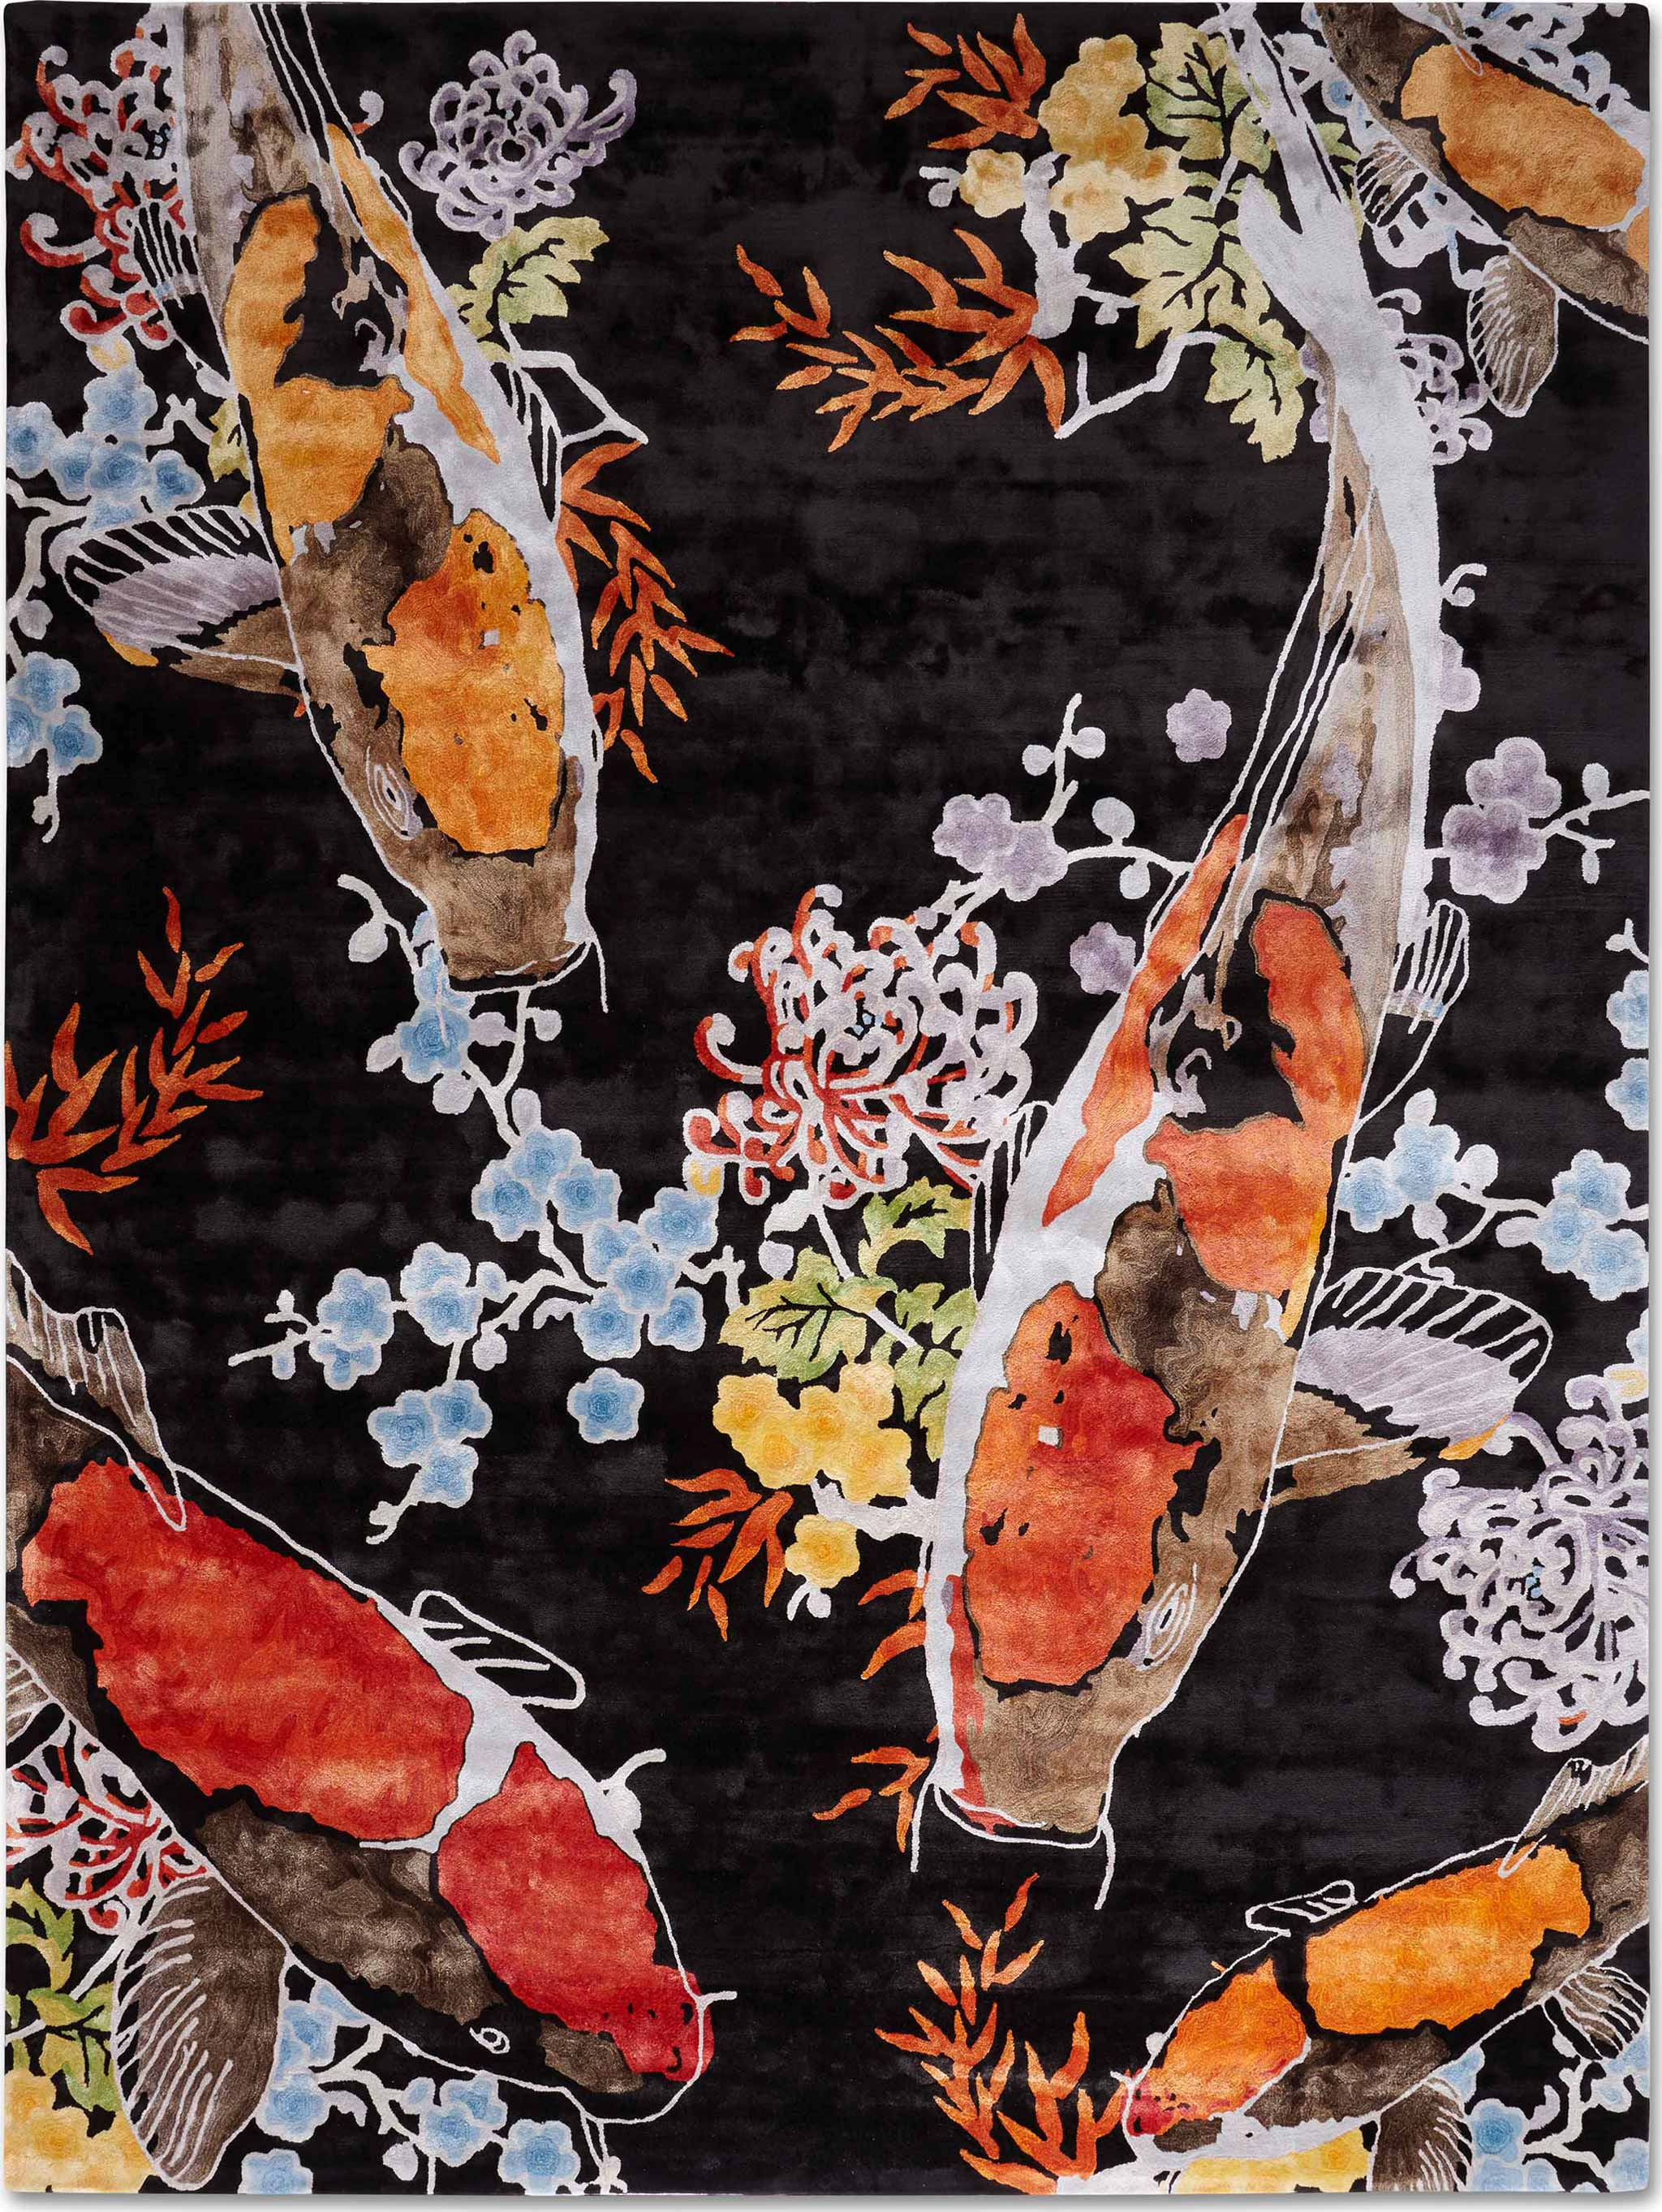 Koi 5 shown in colour Black by Rug Star by Jürgen Dahlmanns - 100% viscose tufted in China. | Image courtesy of Rug Star.